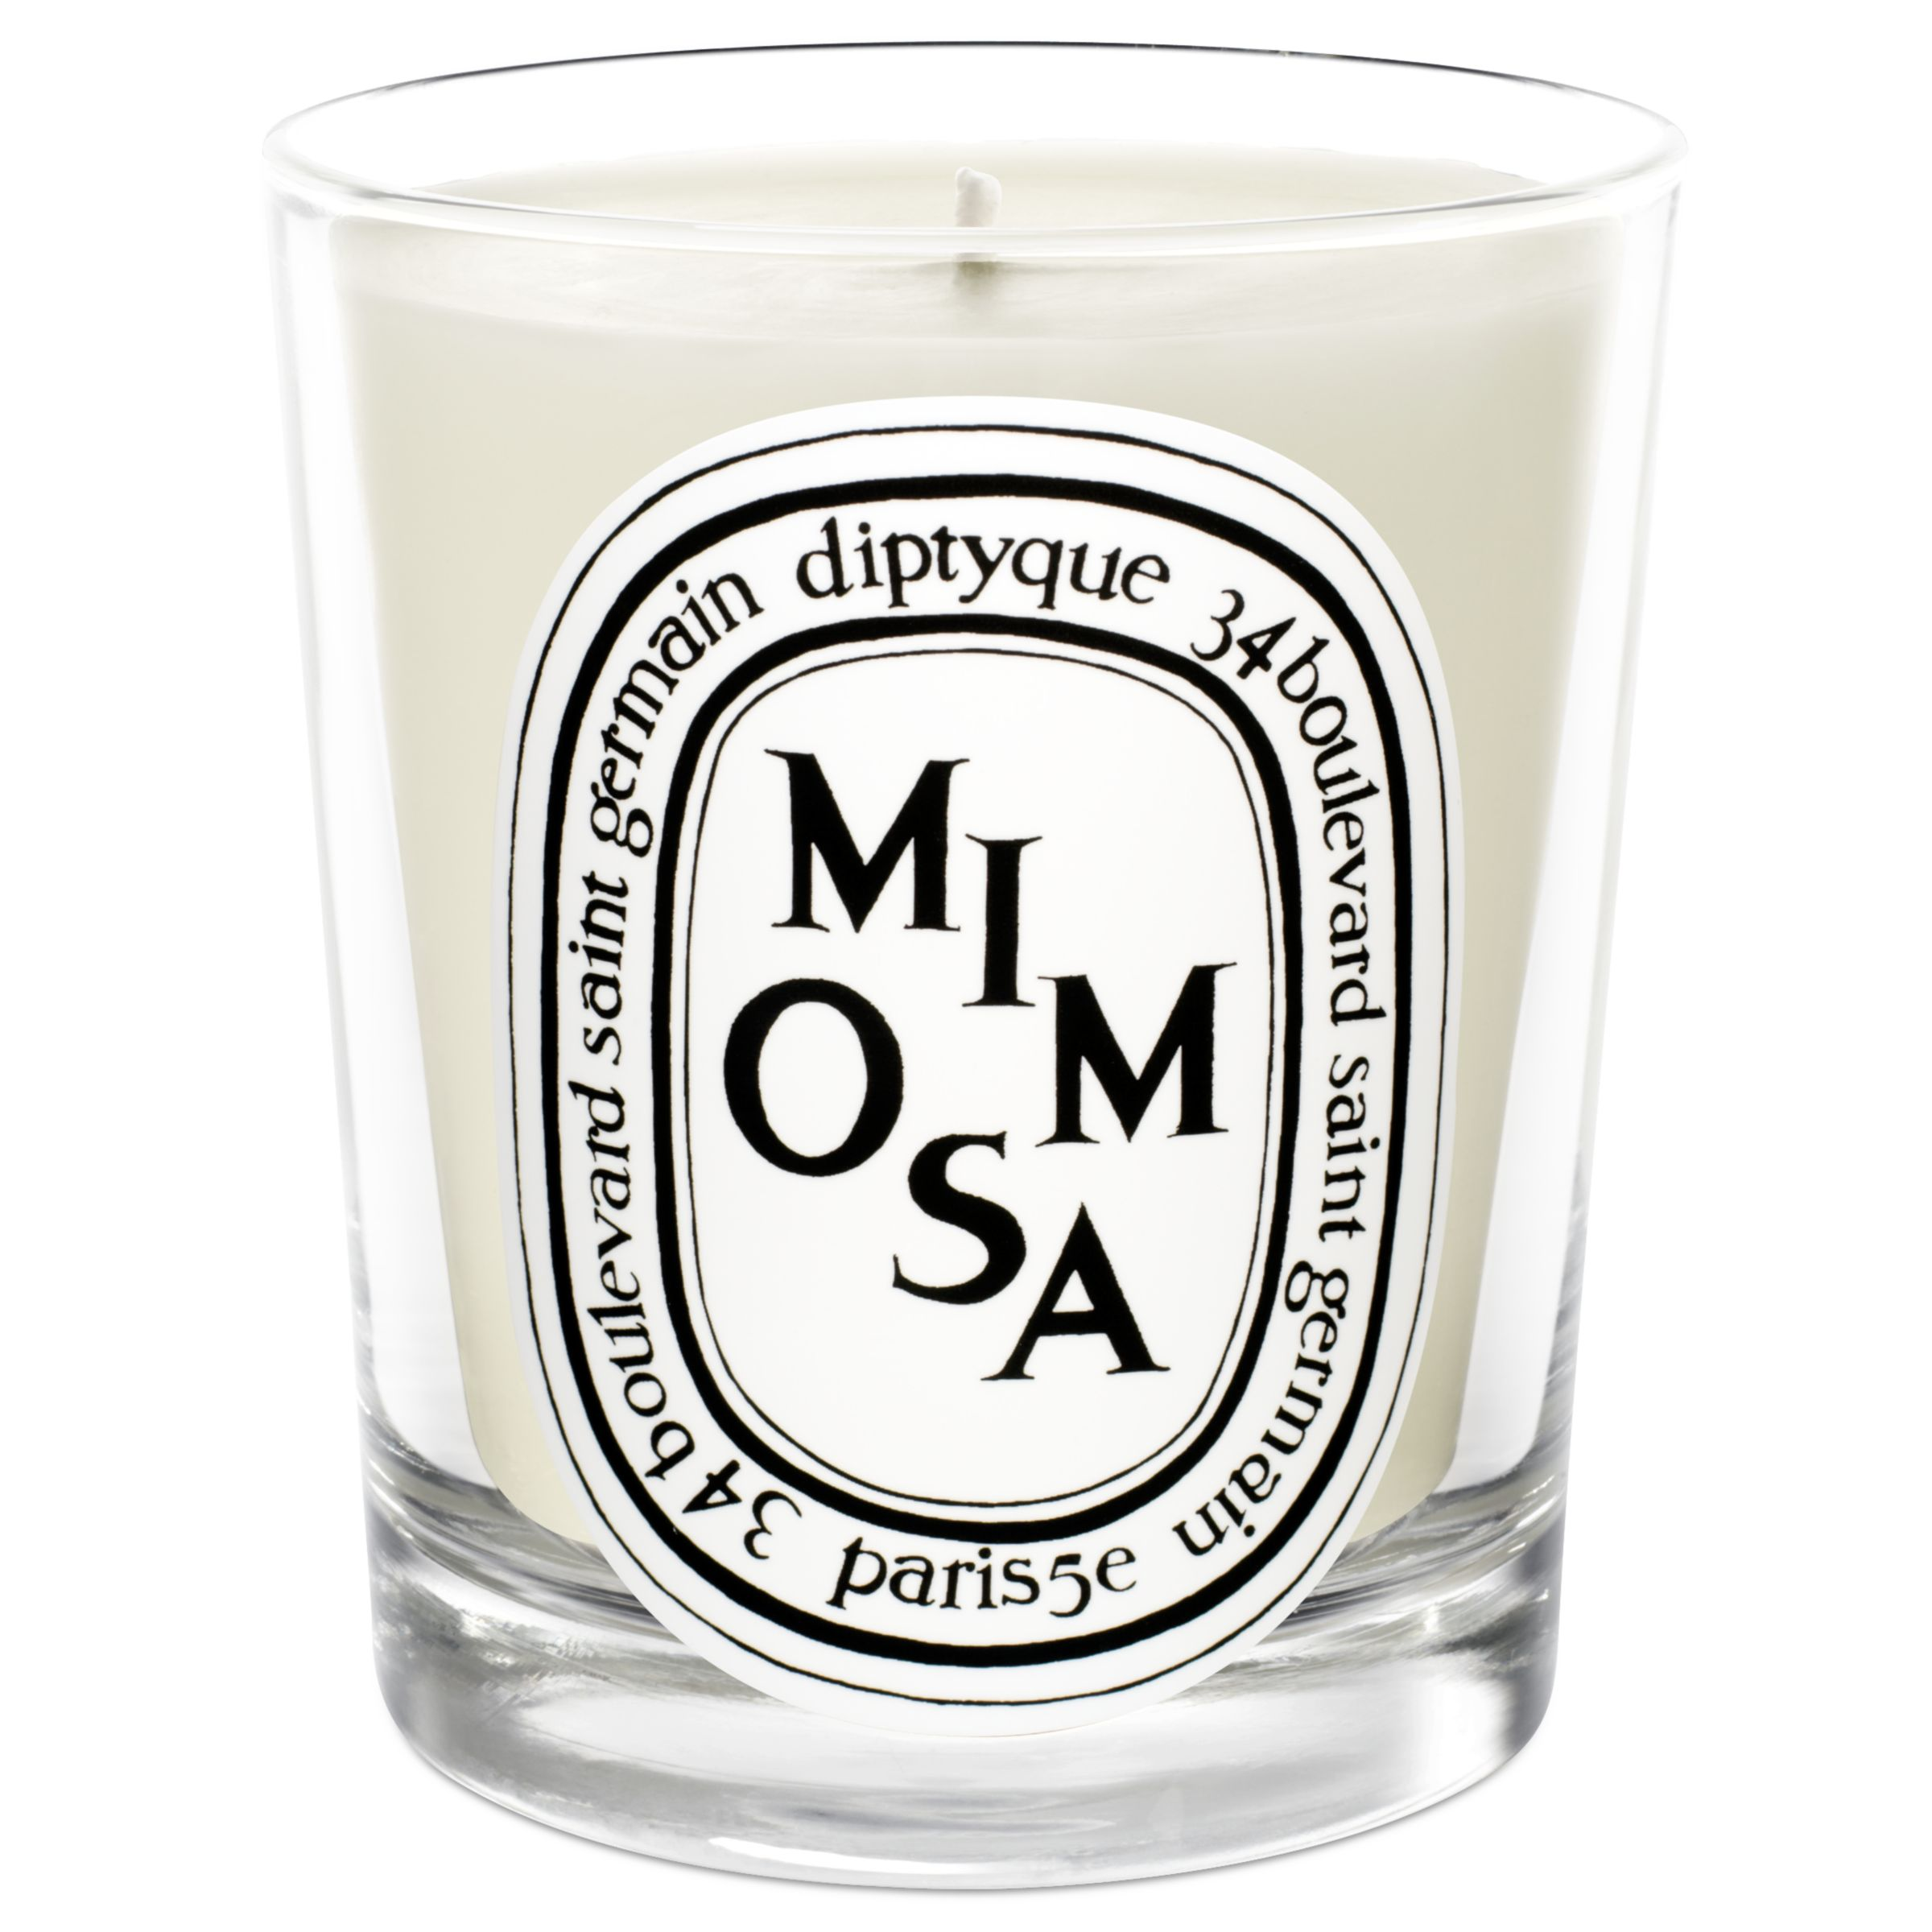 Diptyque Diptyque Mimosa Scented Candle, 190g